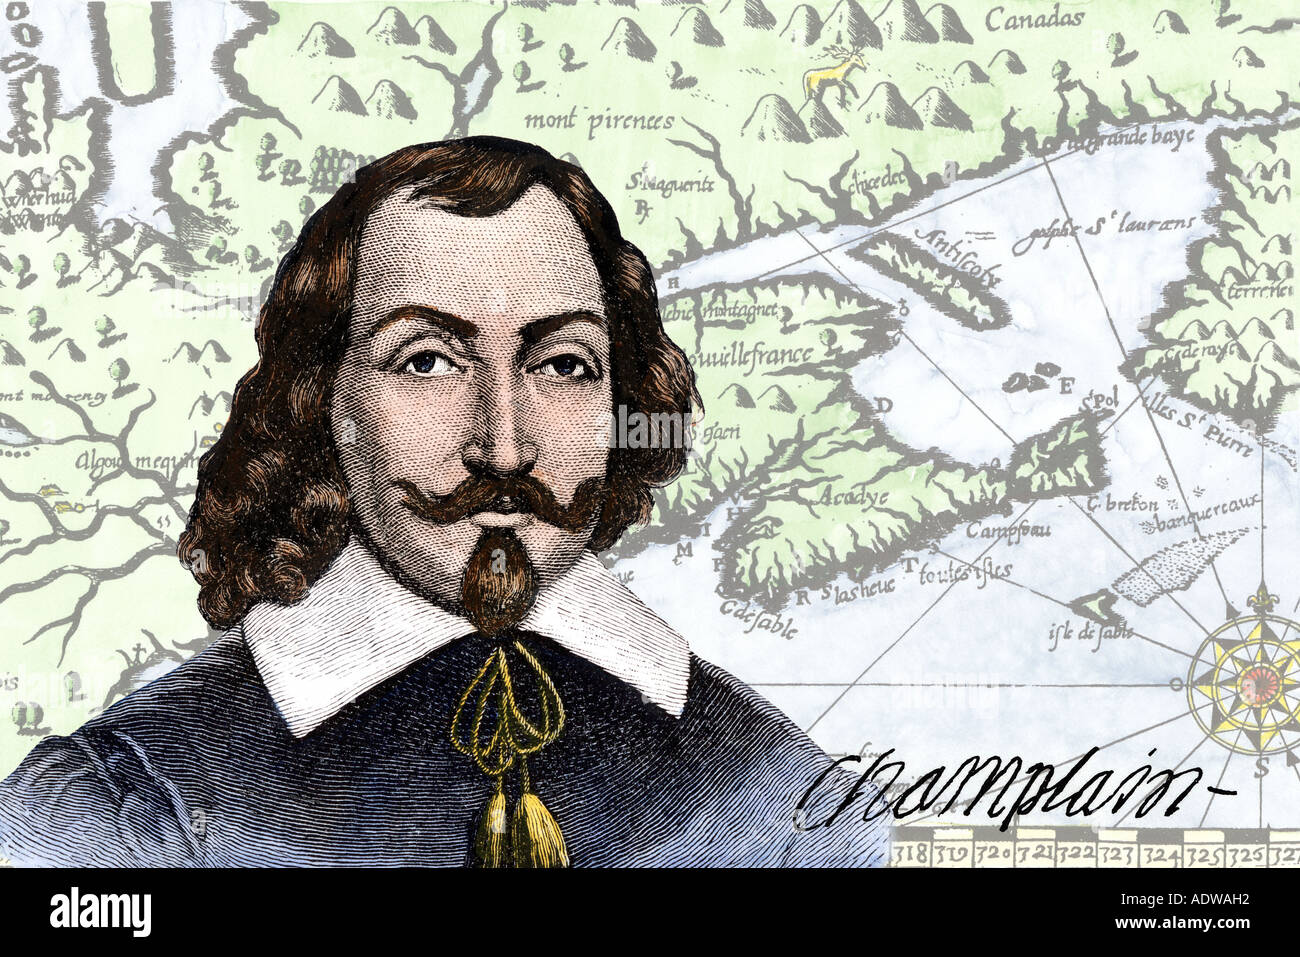 French explorer Samuel de Champlain and his map of the Gulf of St Lawrence in the early 1600s. Hand-colored woodcuts digitally combined - Stock Image